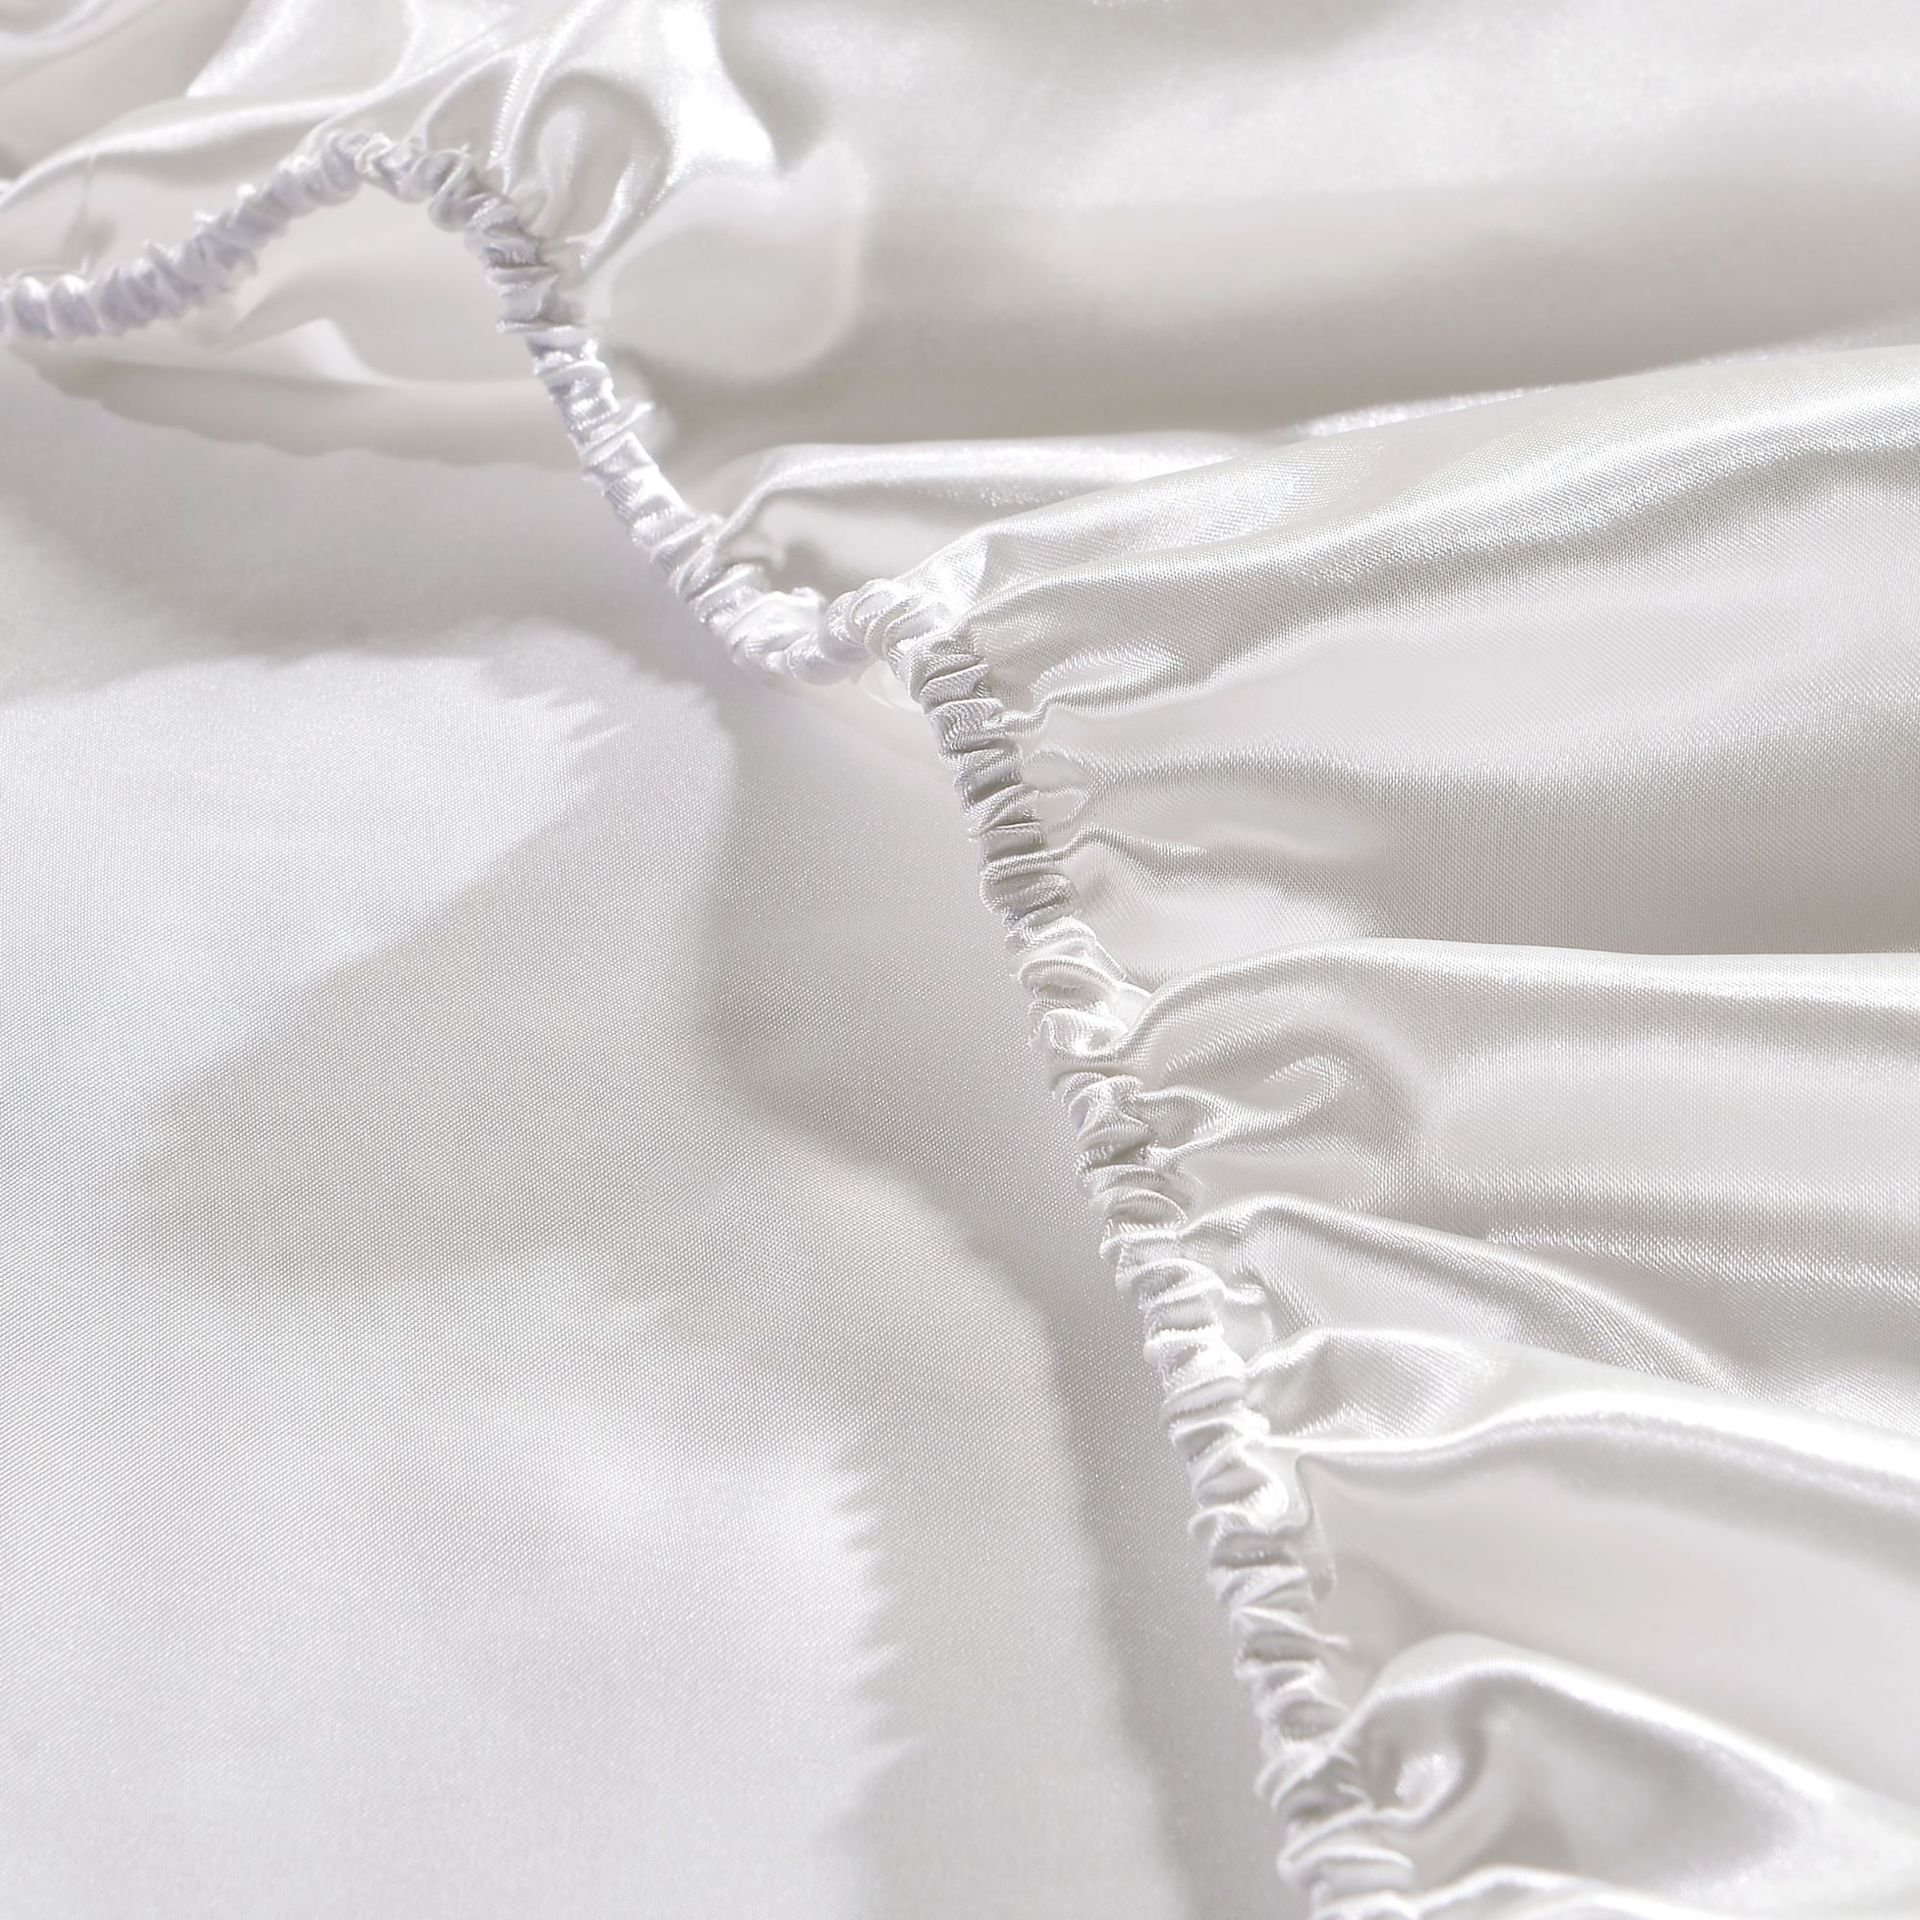 Satin Silk Bed Fitted Sheet Deep Pocket Soft Wrinkle Fade